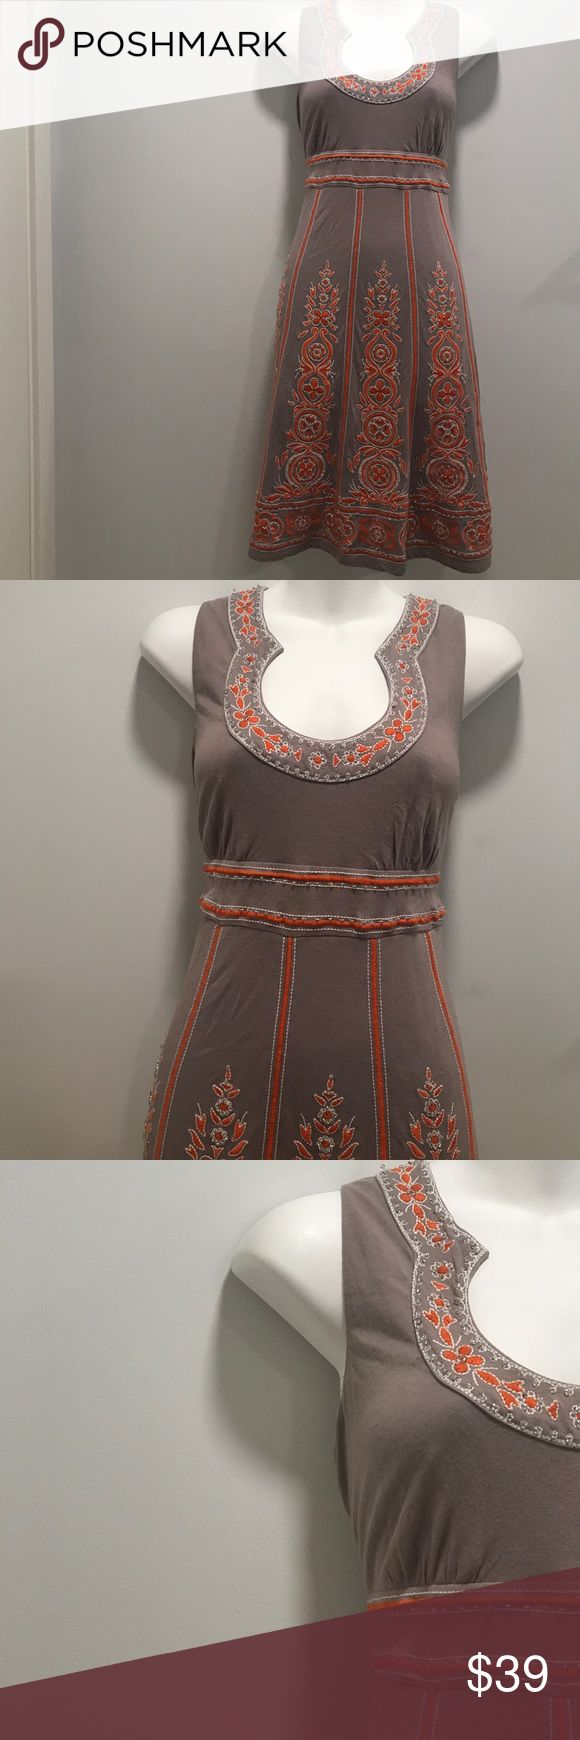 INC GREY AND ORANGE SEQUIN DRESS- size S This embroidery beautiful dress  is lined and perfect for summer! Beautiful neckline with rhinestone like jewels on the front side. So... beautiful! Shoulder to hem is about 37 in., bust is 34-38 in. (Stretches), waist is 30-32 in. (Stretches) INC International Concepts Dresses Midi